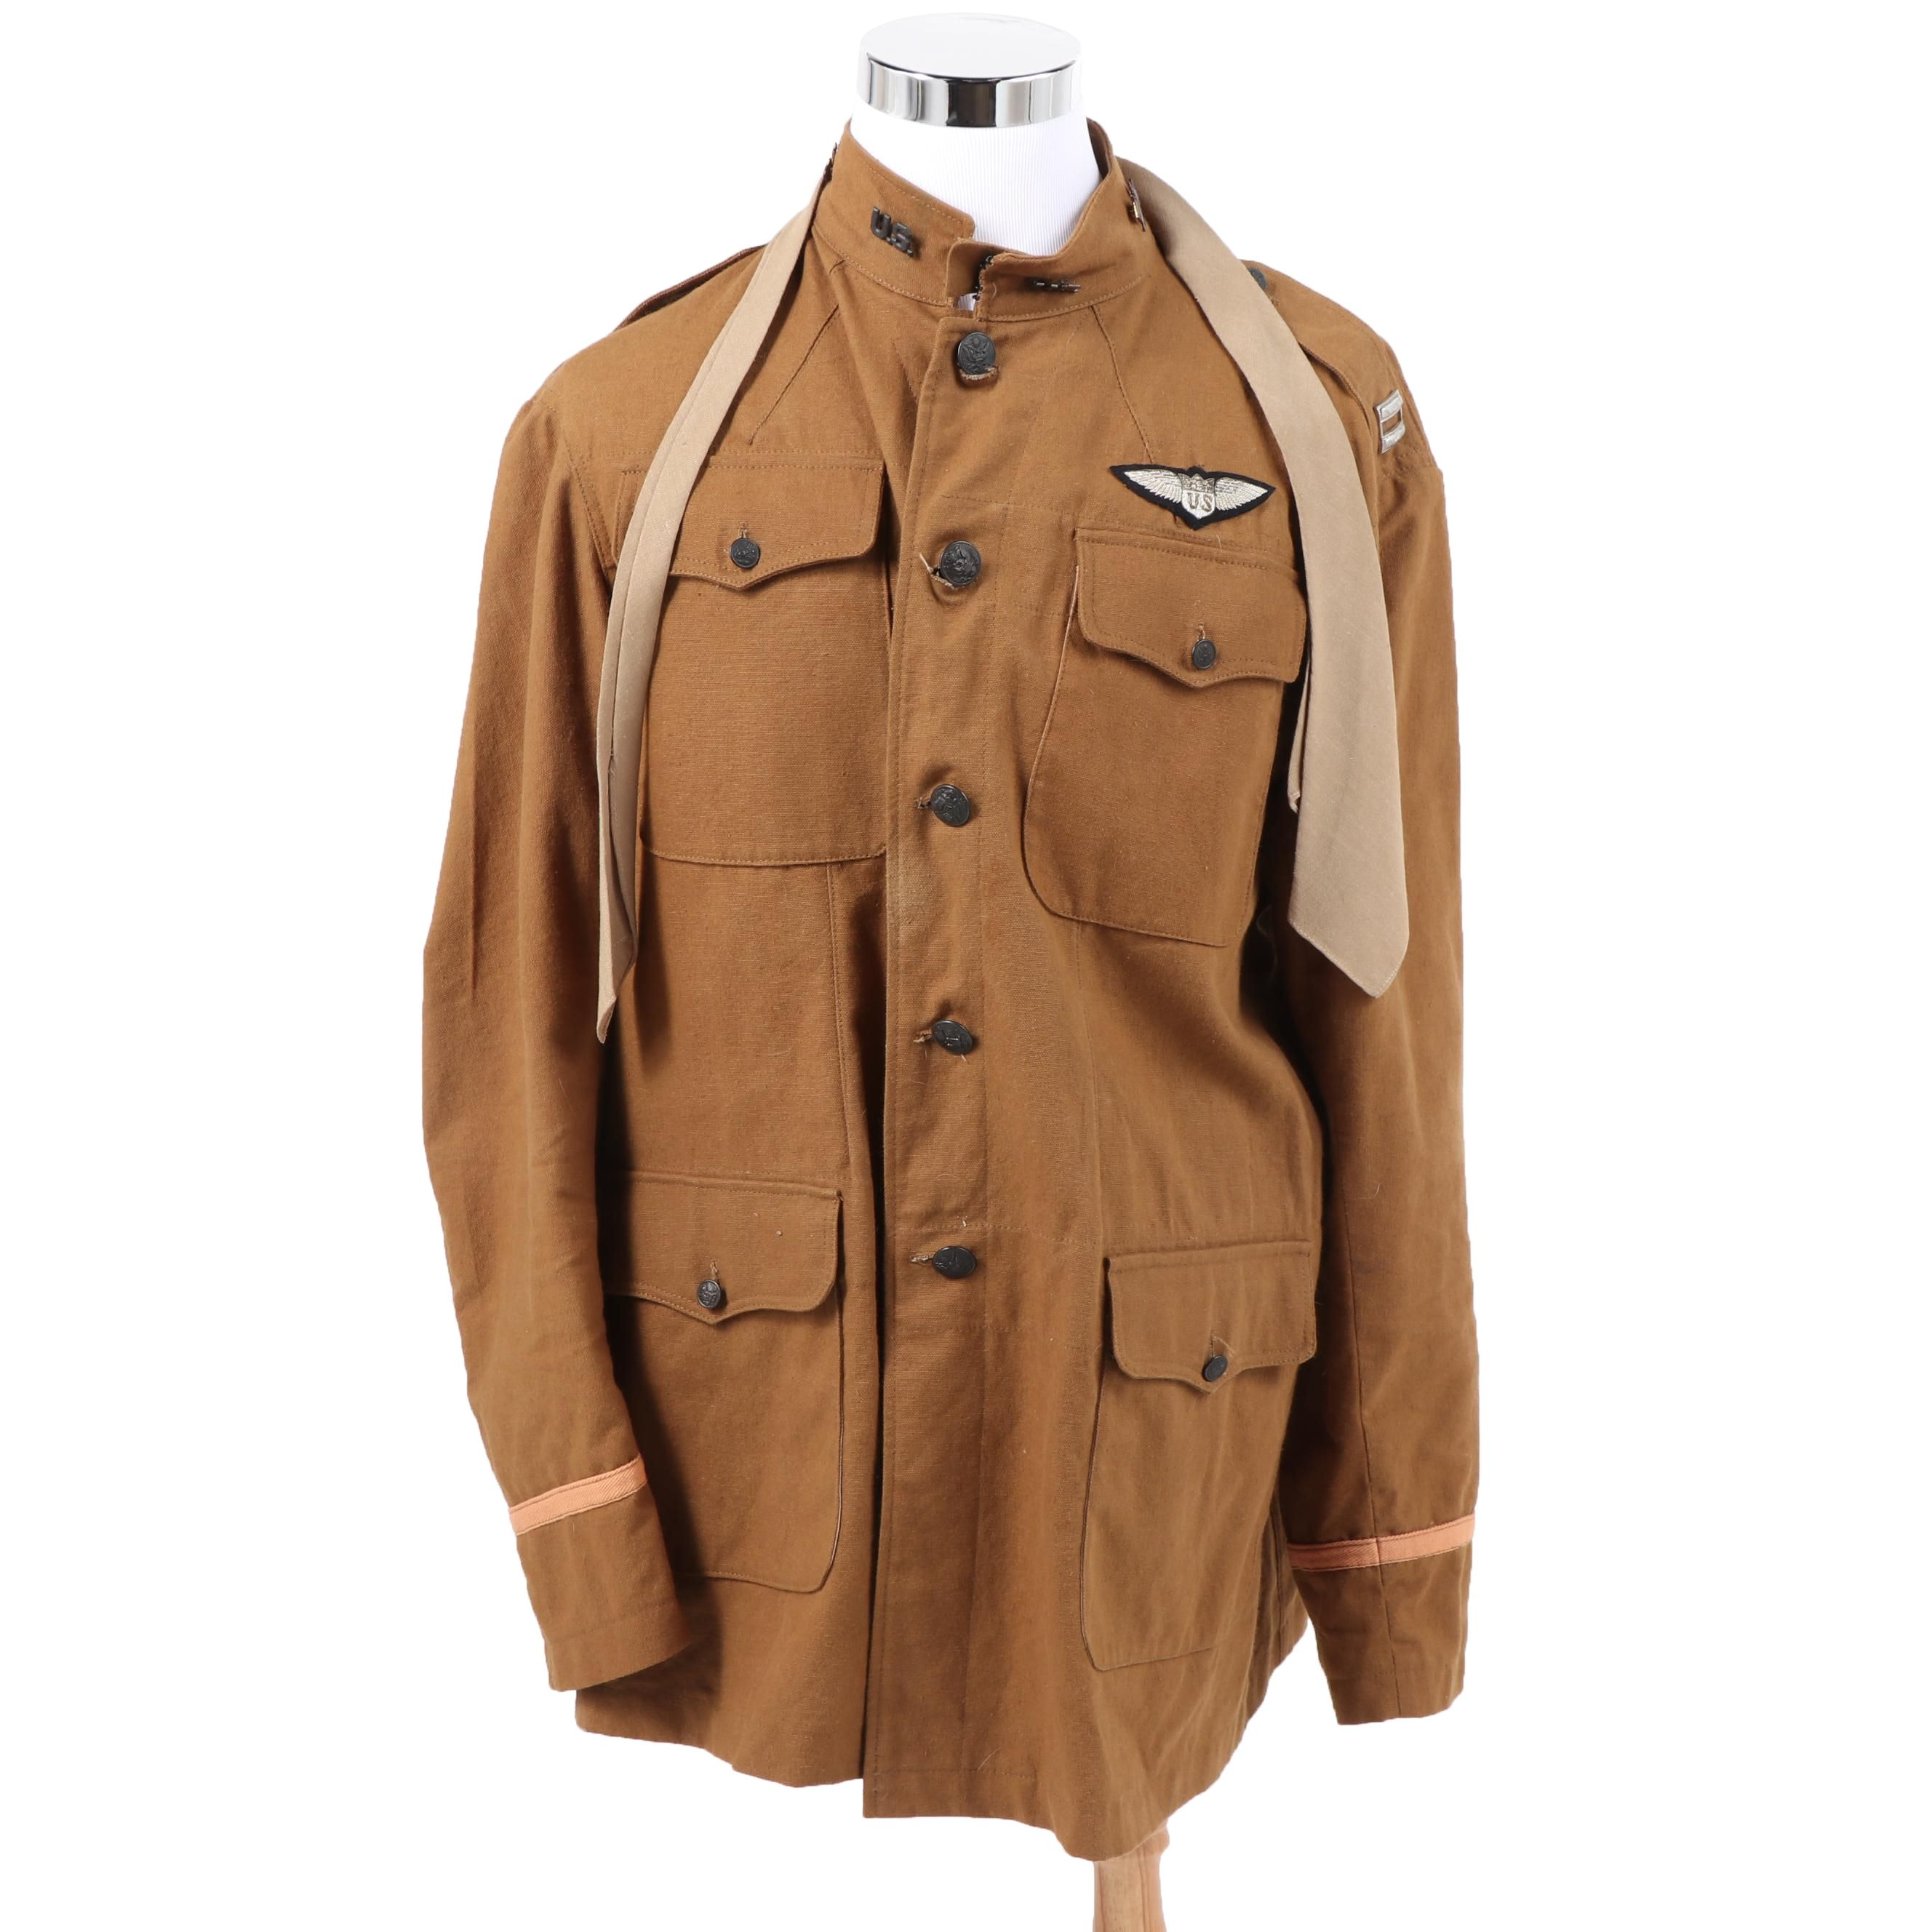 Reproduction WWI U.S. Army Air Service Officer's Tunic with Insignia and Tie